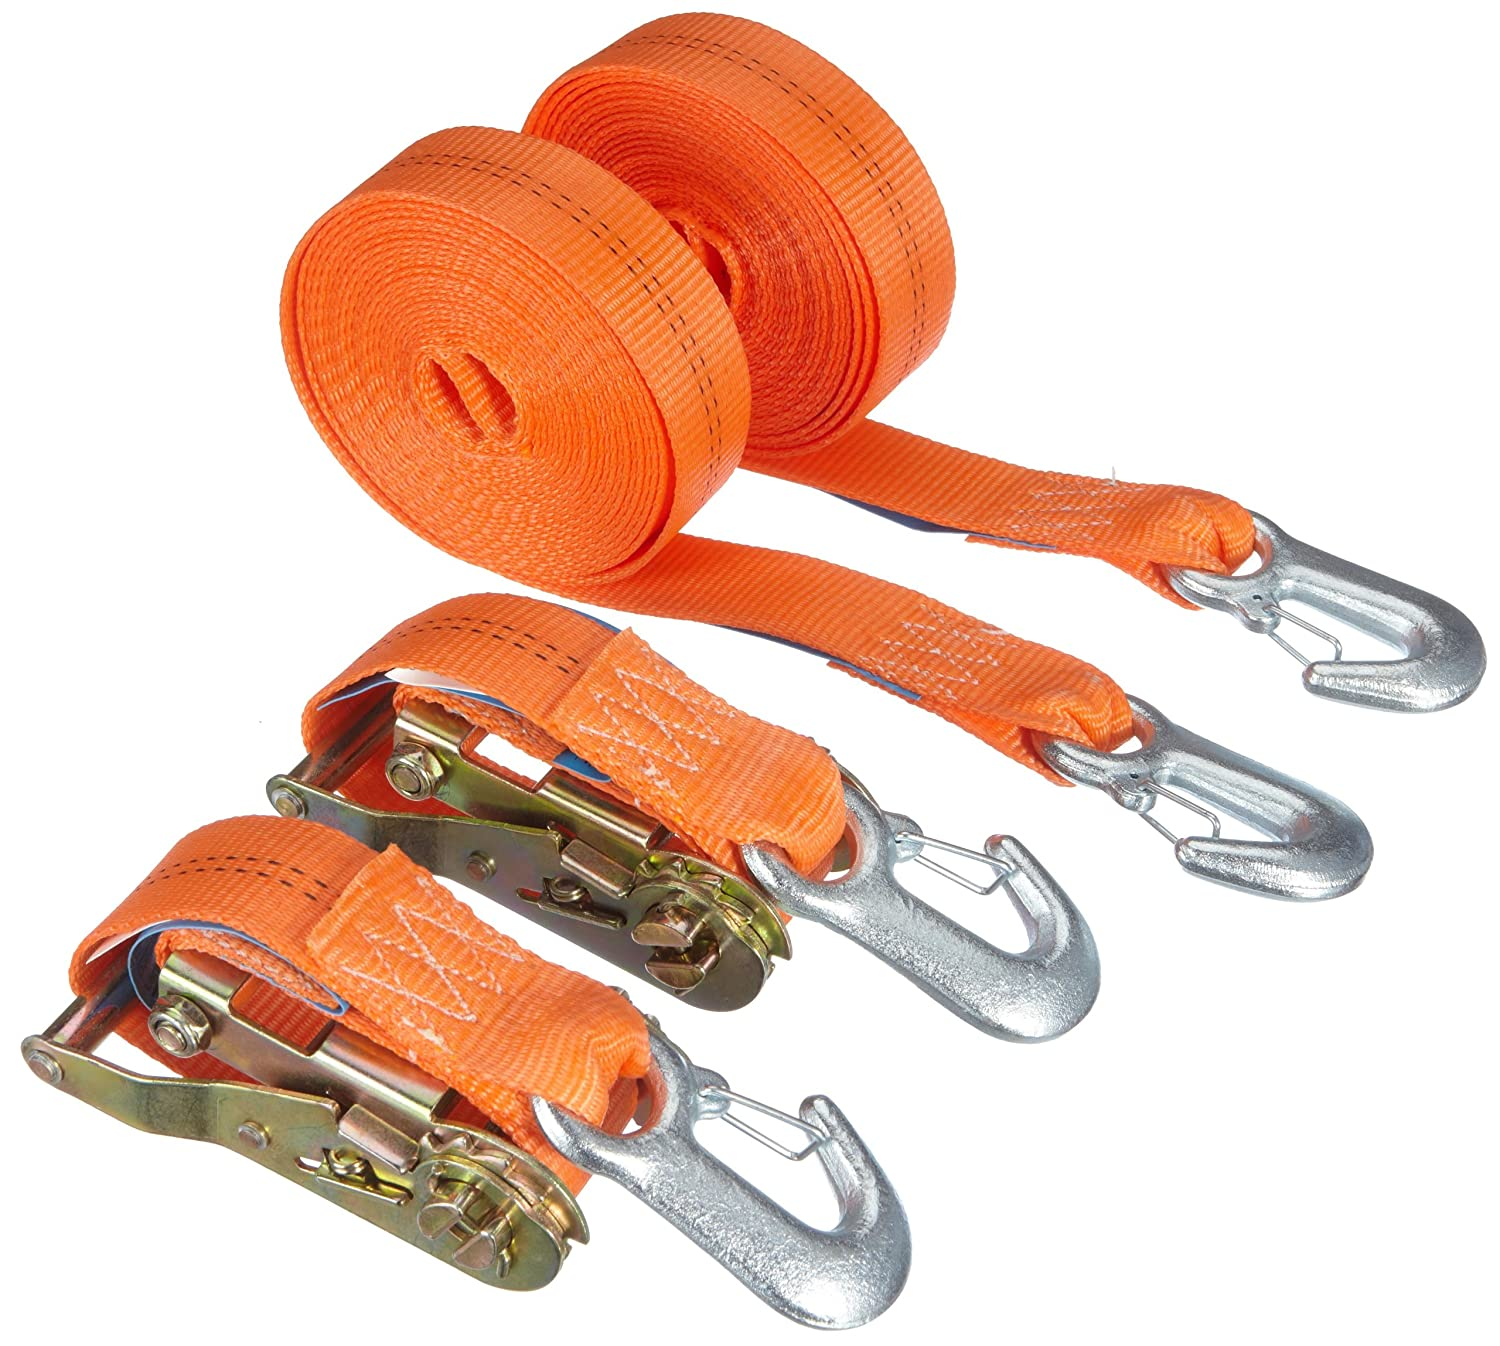 Braun 1000-2-600+3030/VE2 Sangle d'arrimage à cliquet et mousquetons 2000 daN, 6 m x 35 mm (Orange) 6 m x 35 mm (Orange) Braun GmbH